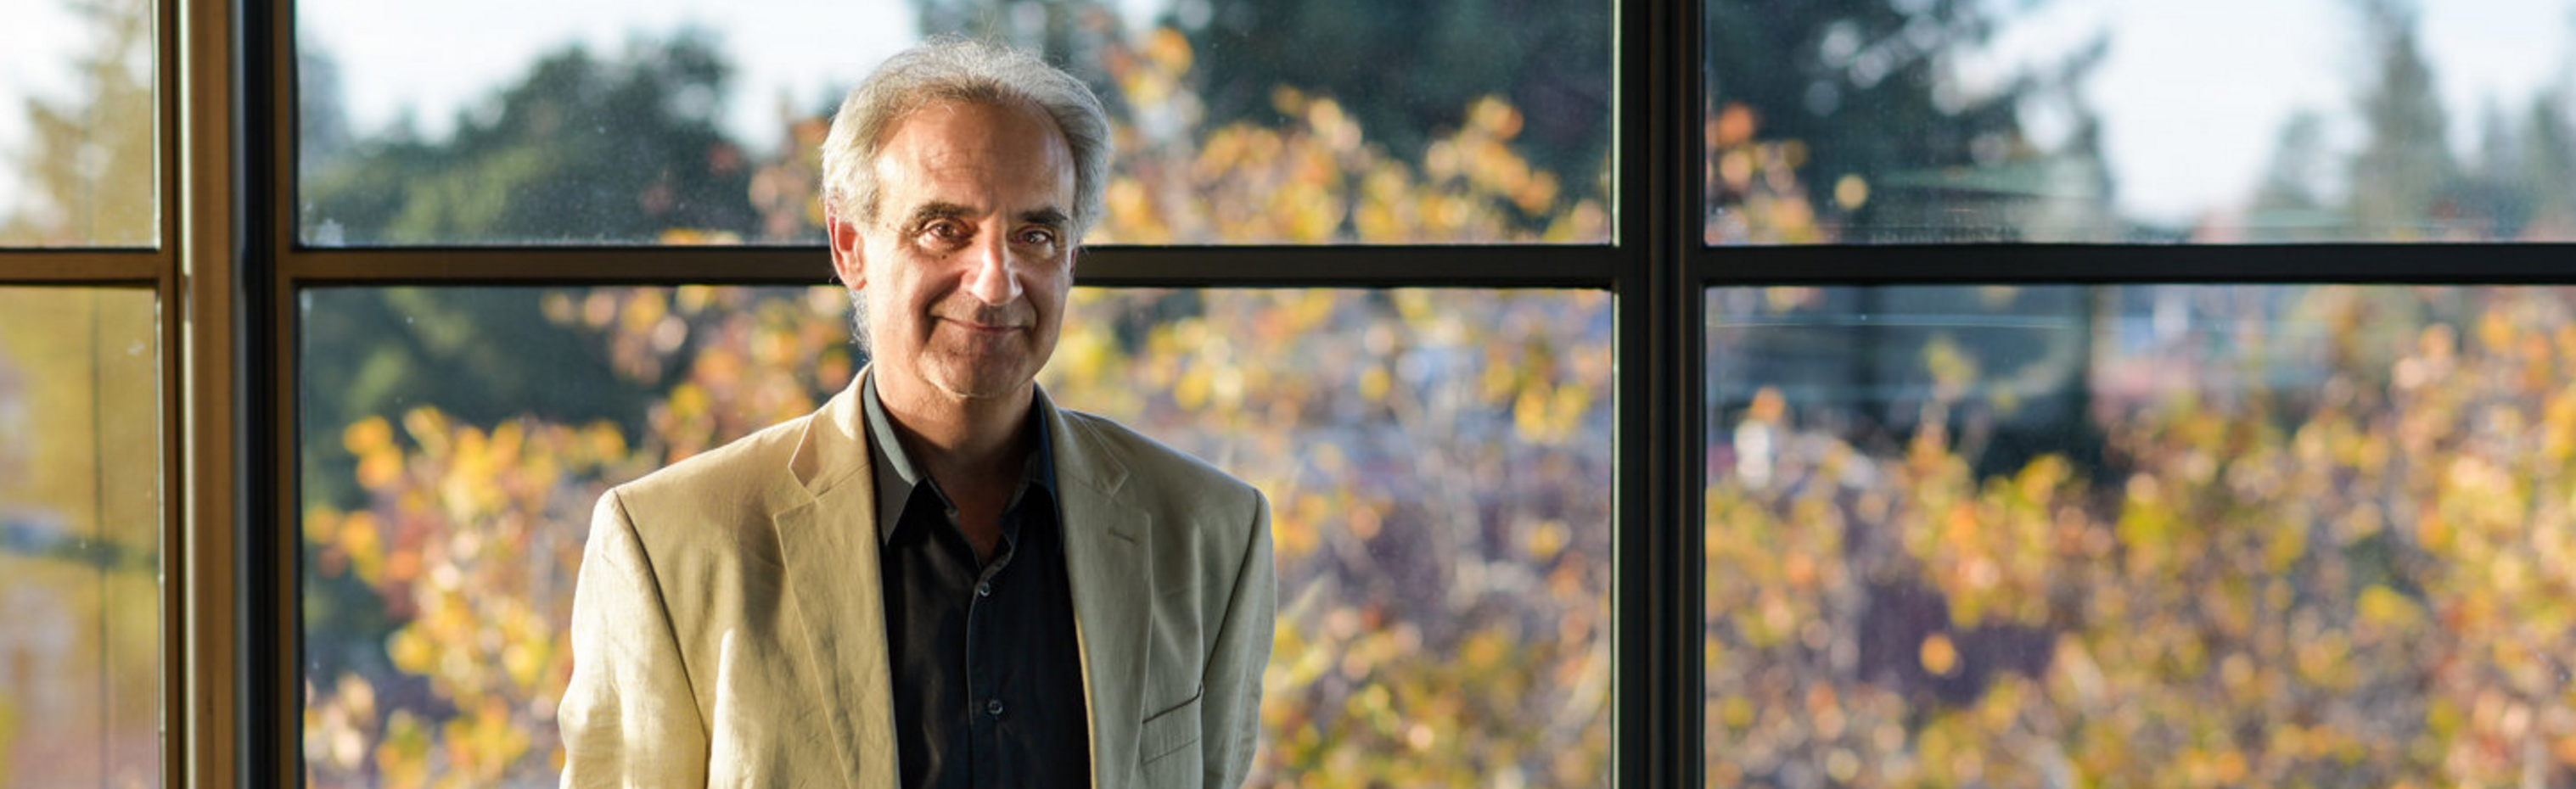 interview gary cohen five questions about health care emerson collective s lucas oliver oswald spoke cohen about how health care out harm is addressing a range of issues from toxin contamination